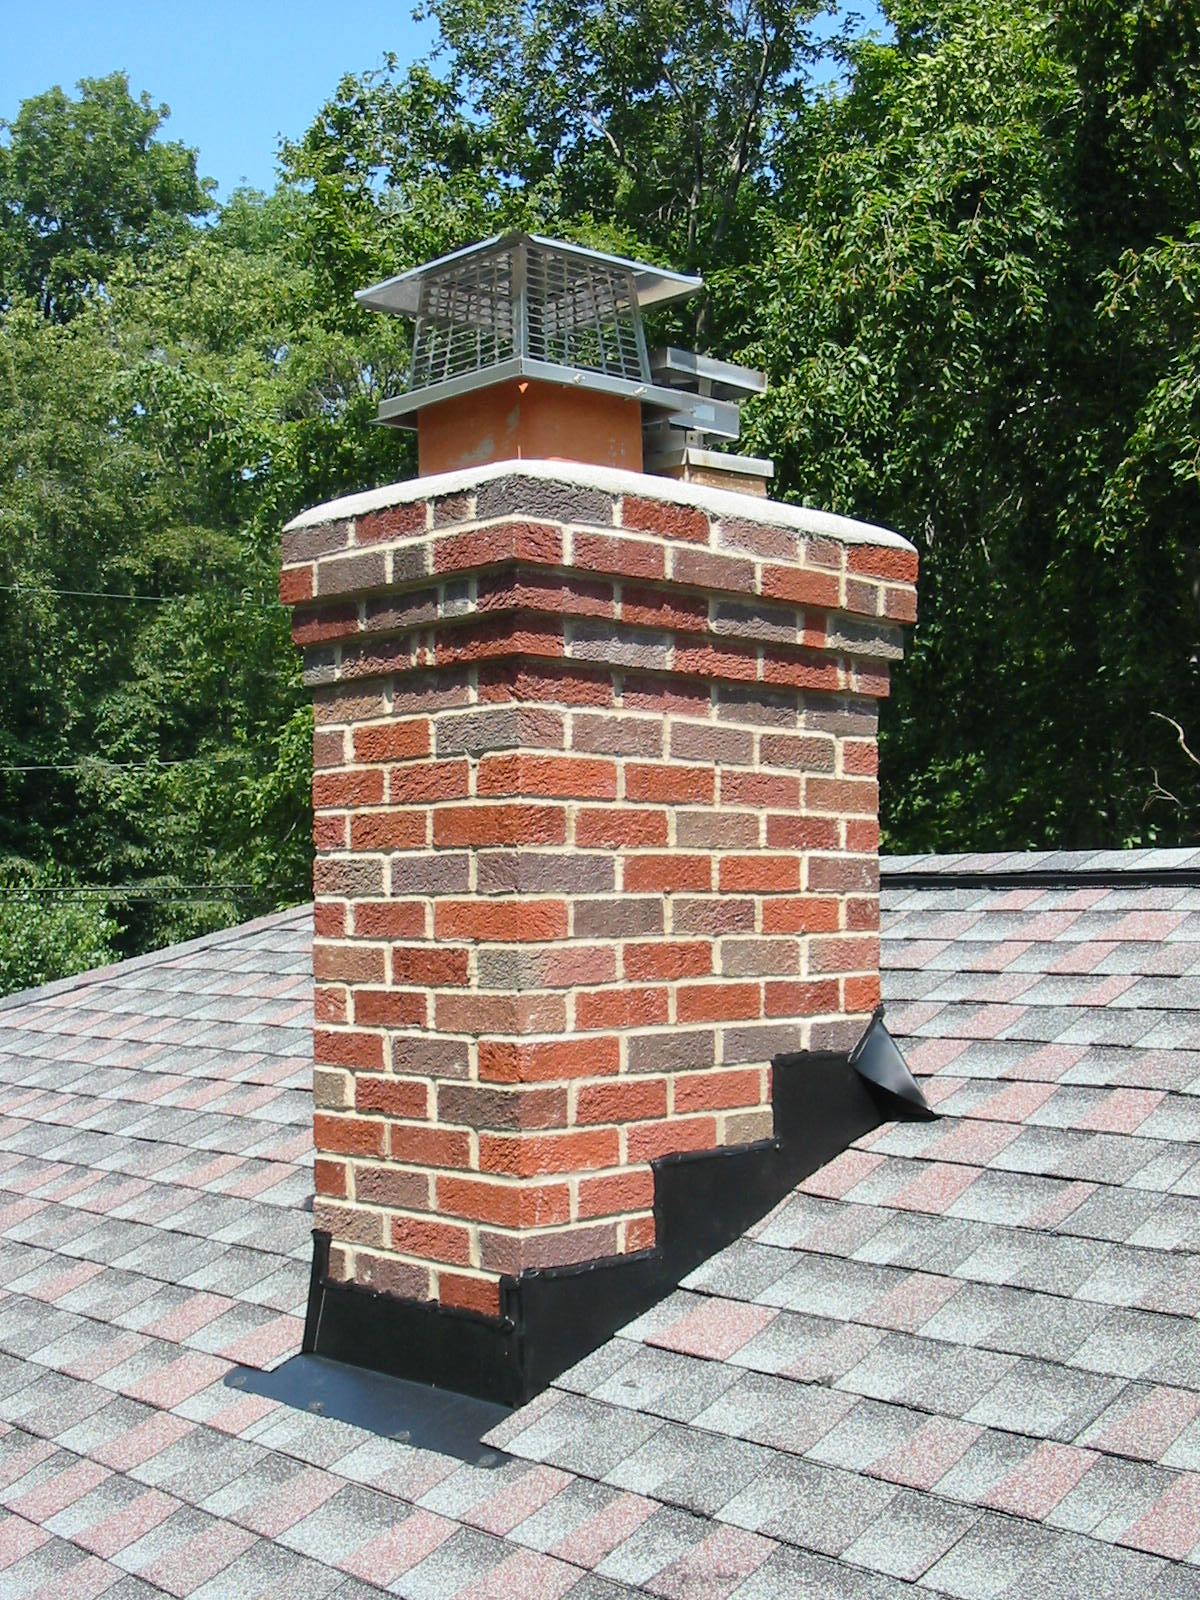 Fireplace Repair Troy Mi Chimney Repair Berkley Mi Chimney Sweep Chimney Repairs Chimney